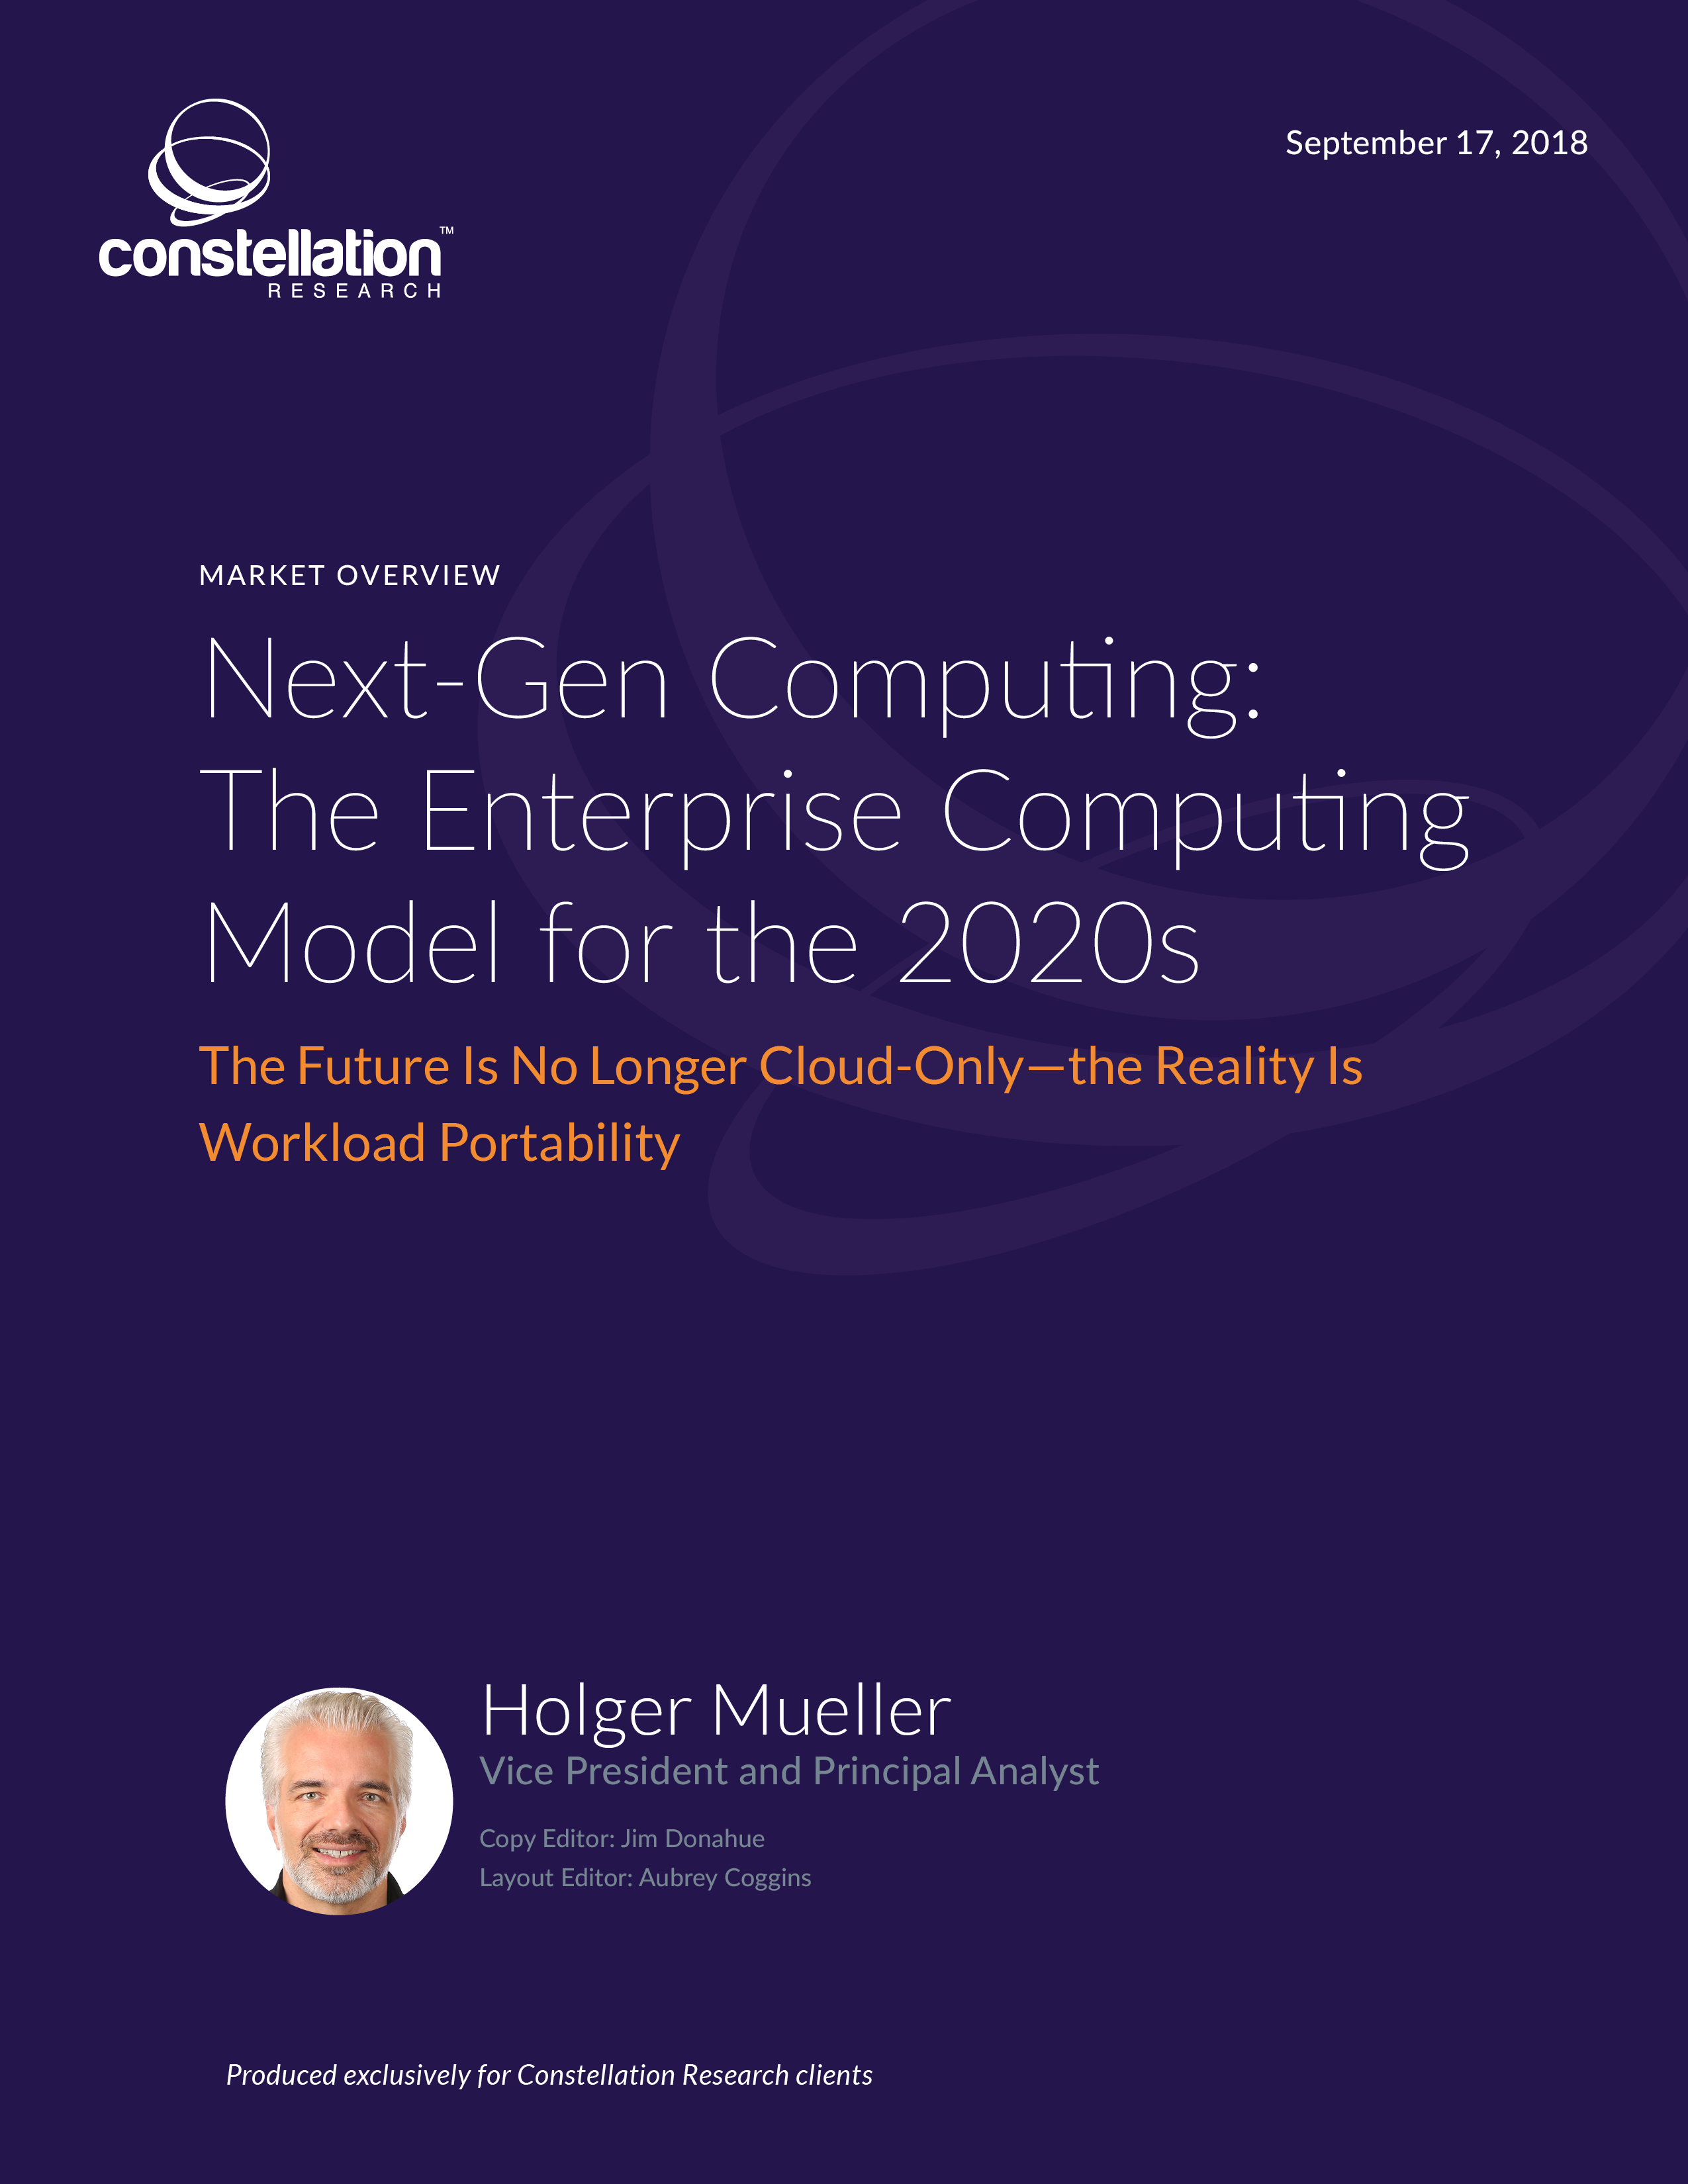 Next Gen Computing the Enterprise Computing Model for the 2020s